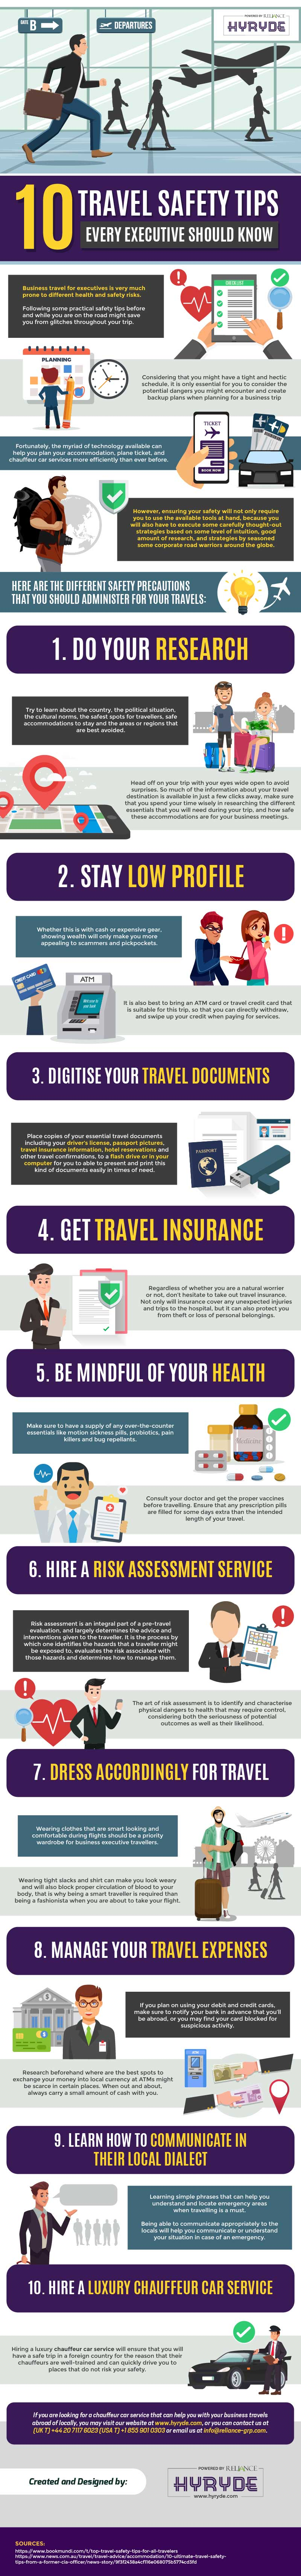 10-Travel-Safety-Tips-Every-Executive-Should-Know